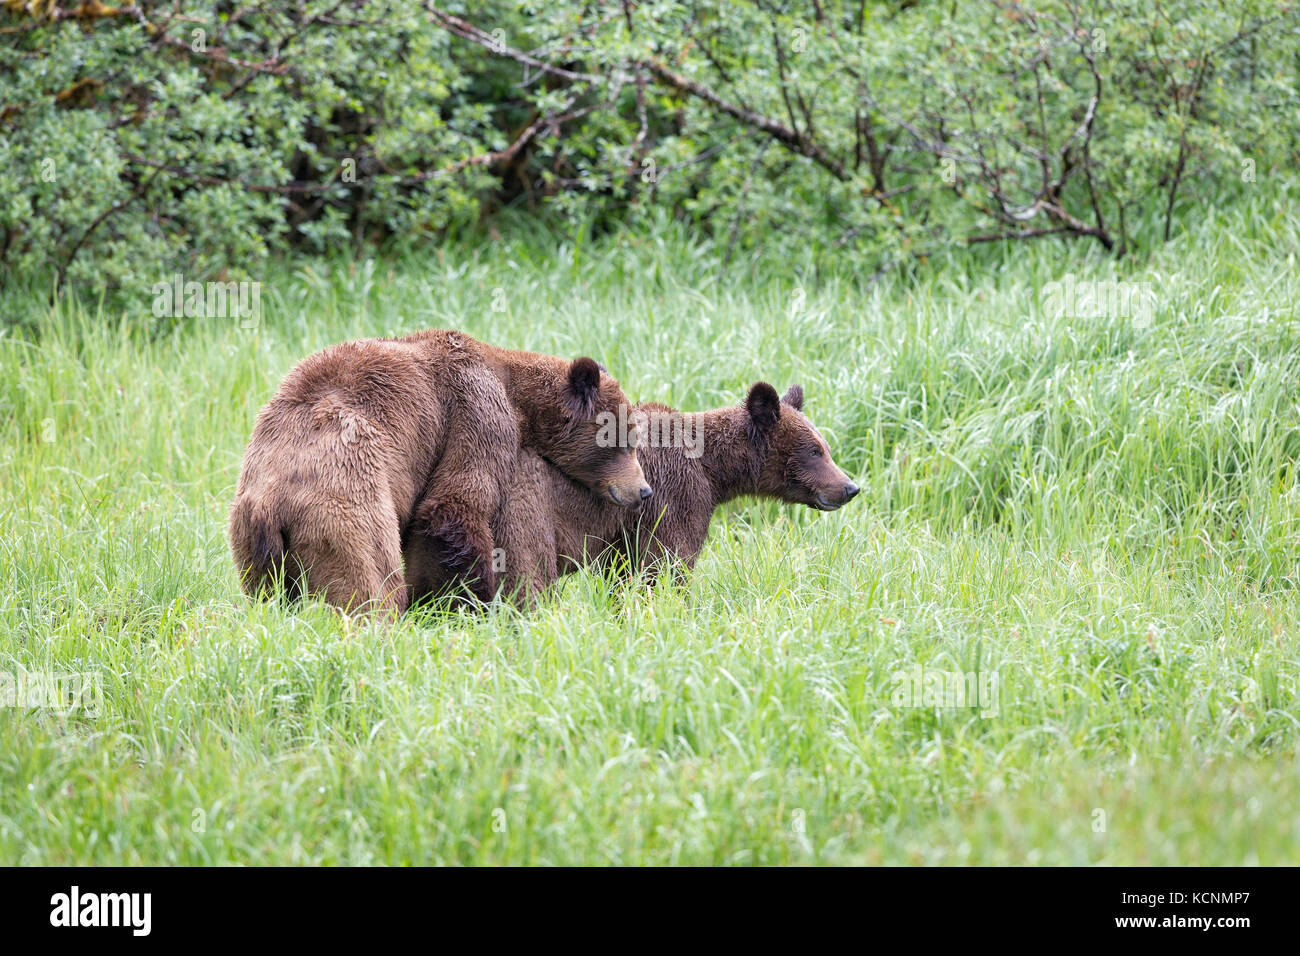 Grizzly bear (Ursus arctos horribilis), young male (left) and female courting, Khutzeymateen Inlet, Khutzeymateen - Stock Image